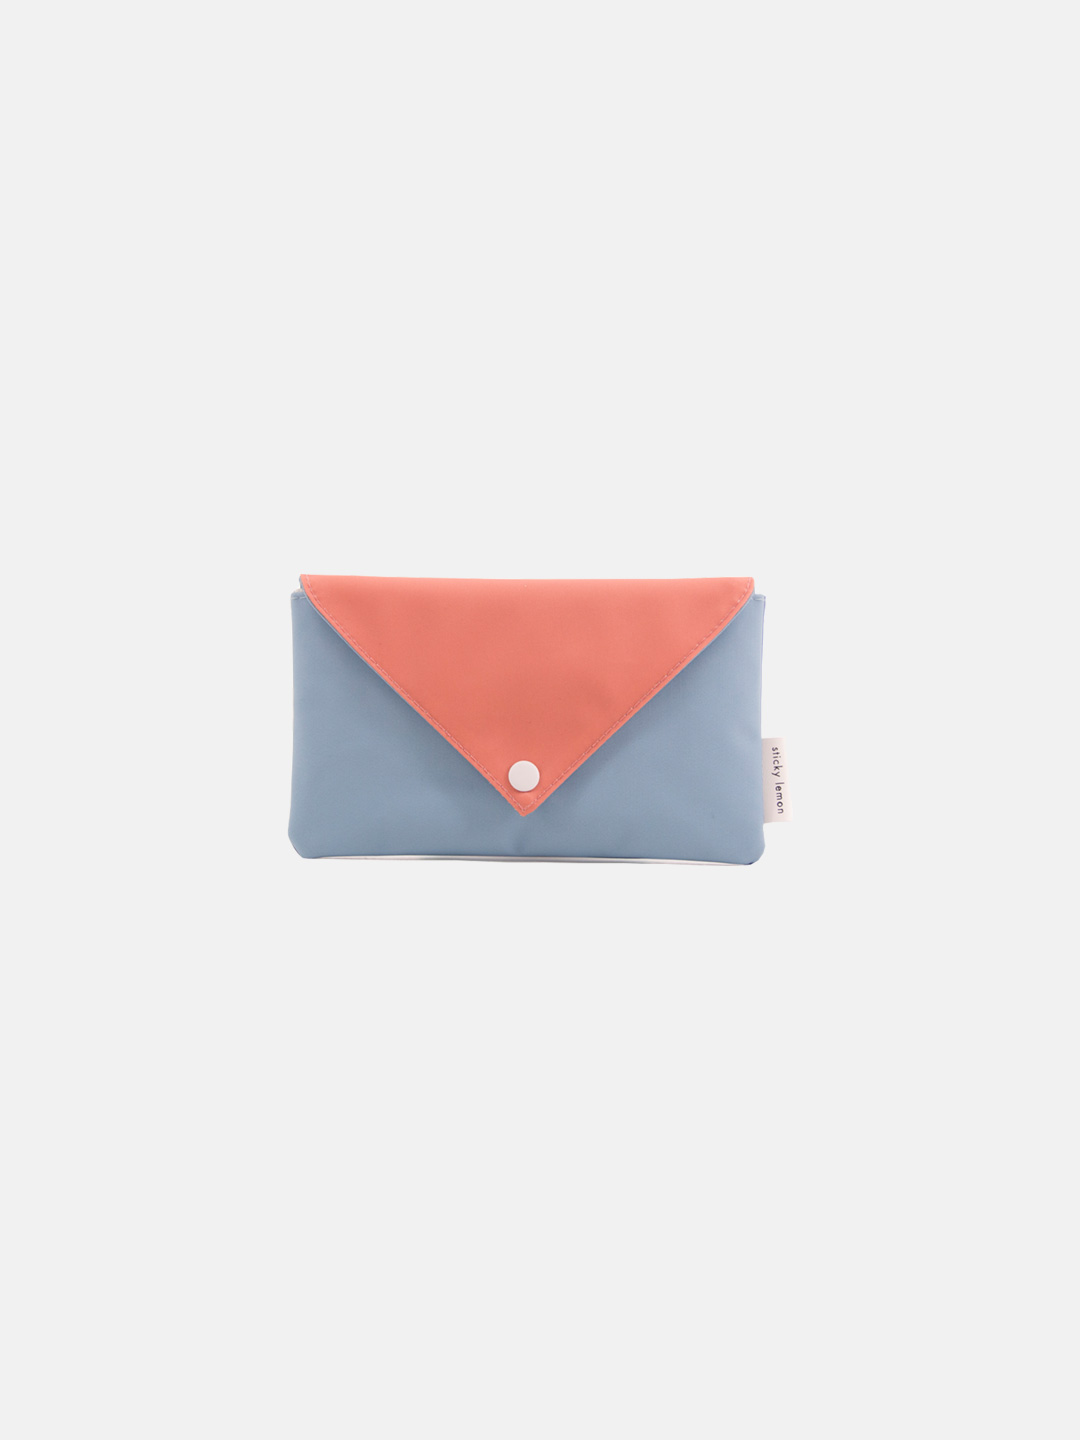 Pencil Case - Envelope Denim Blue